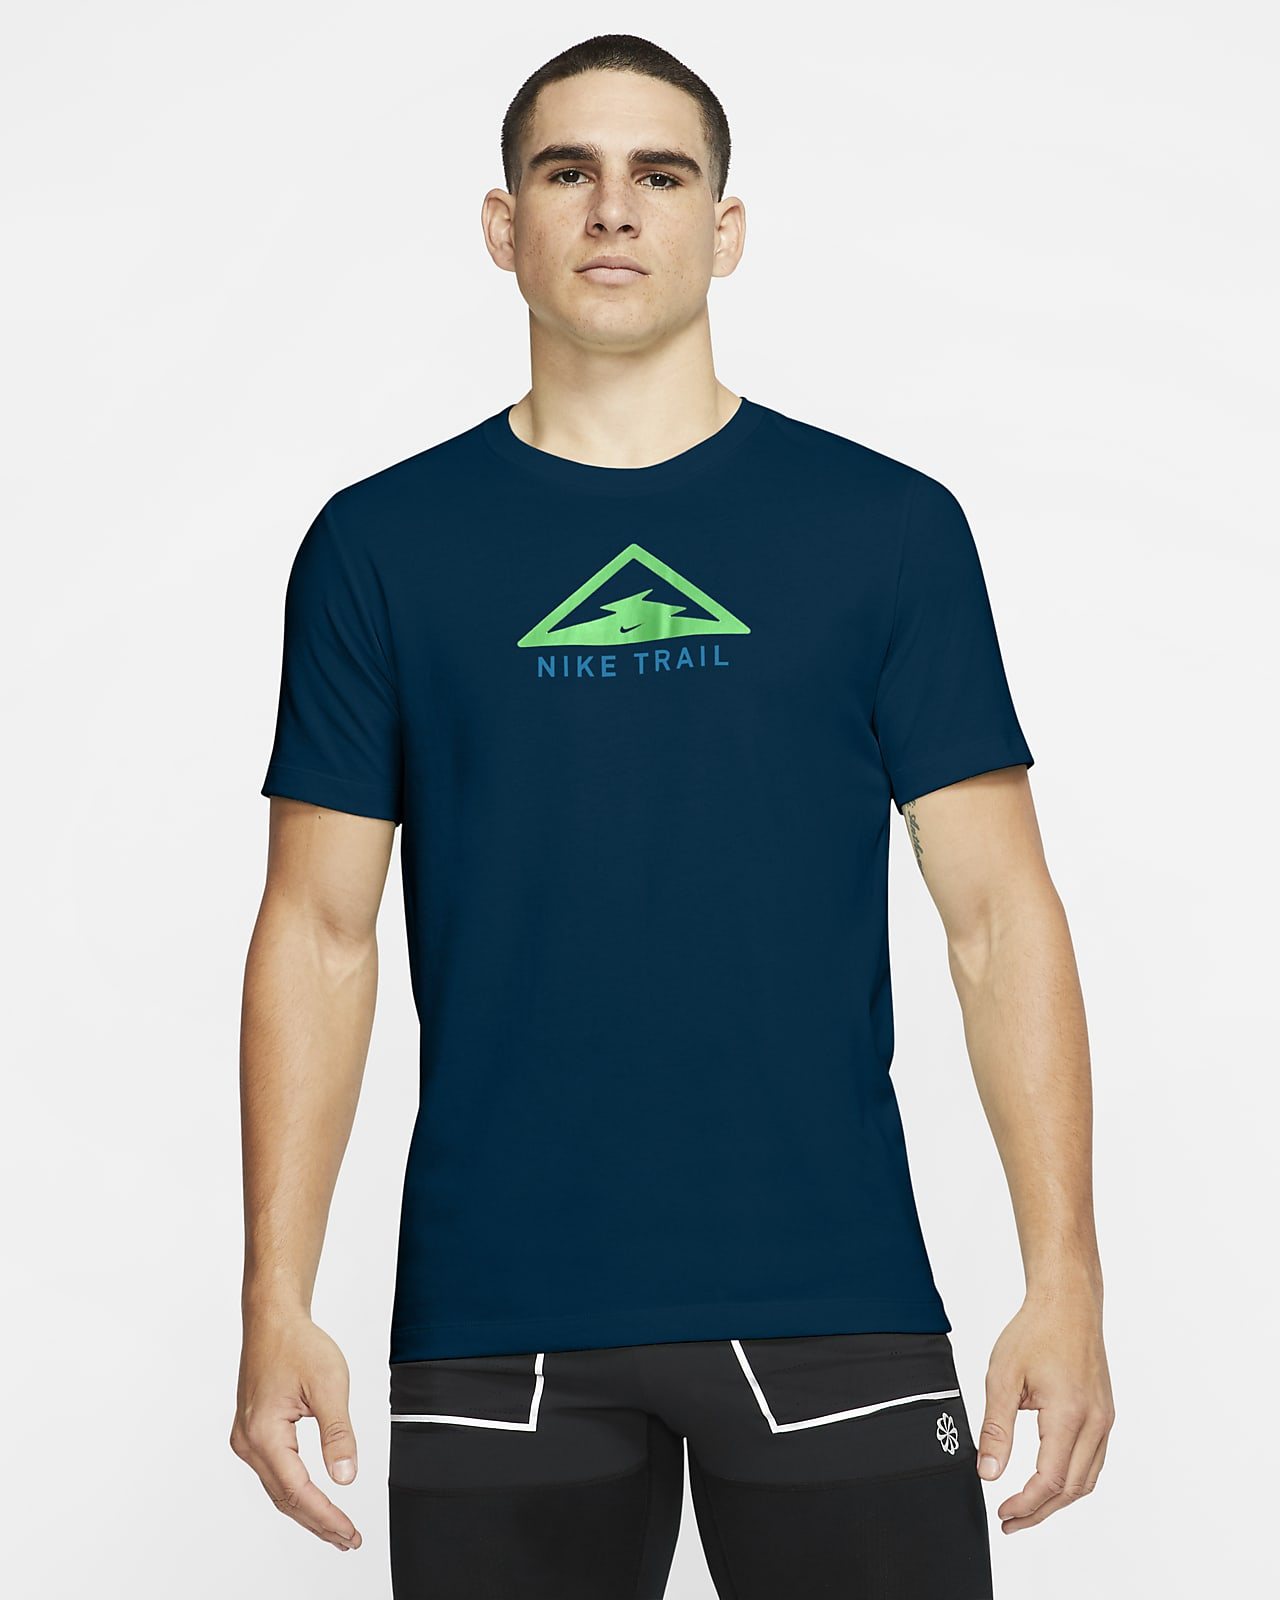 Мужская футболка для трейлраннинга Nike Dri-FIT Trail